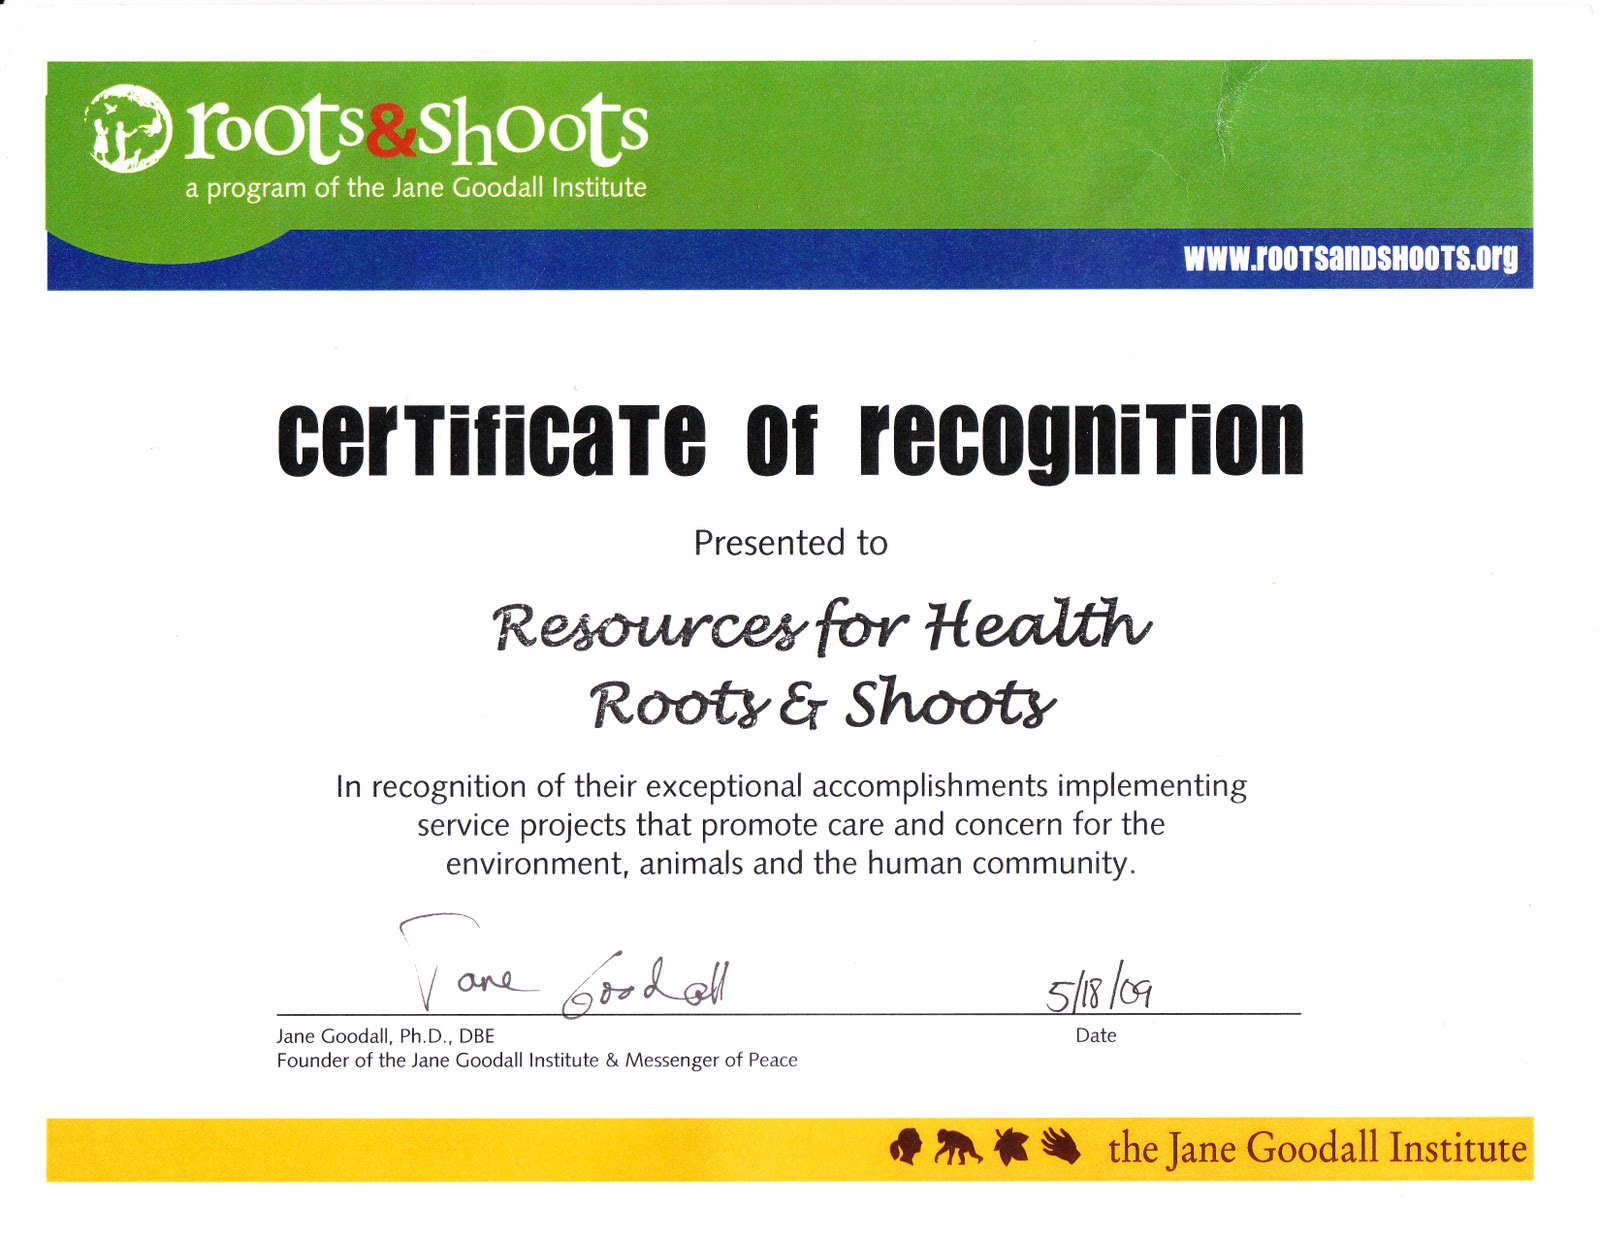 resources for health awards